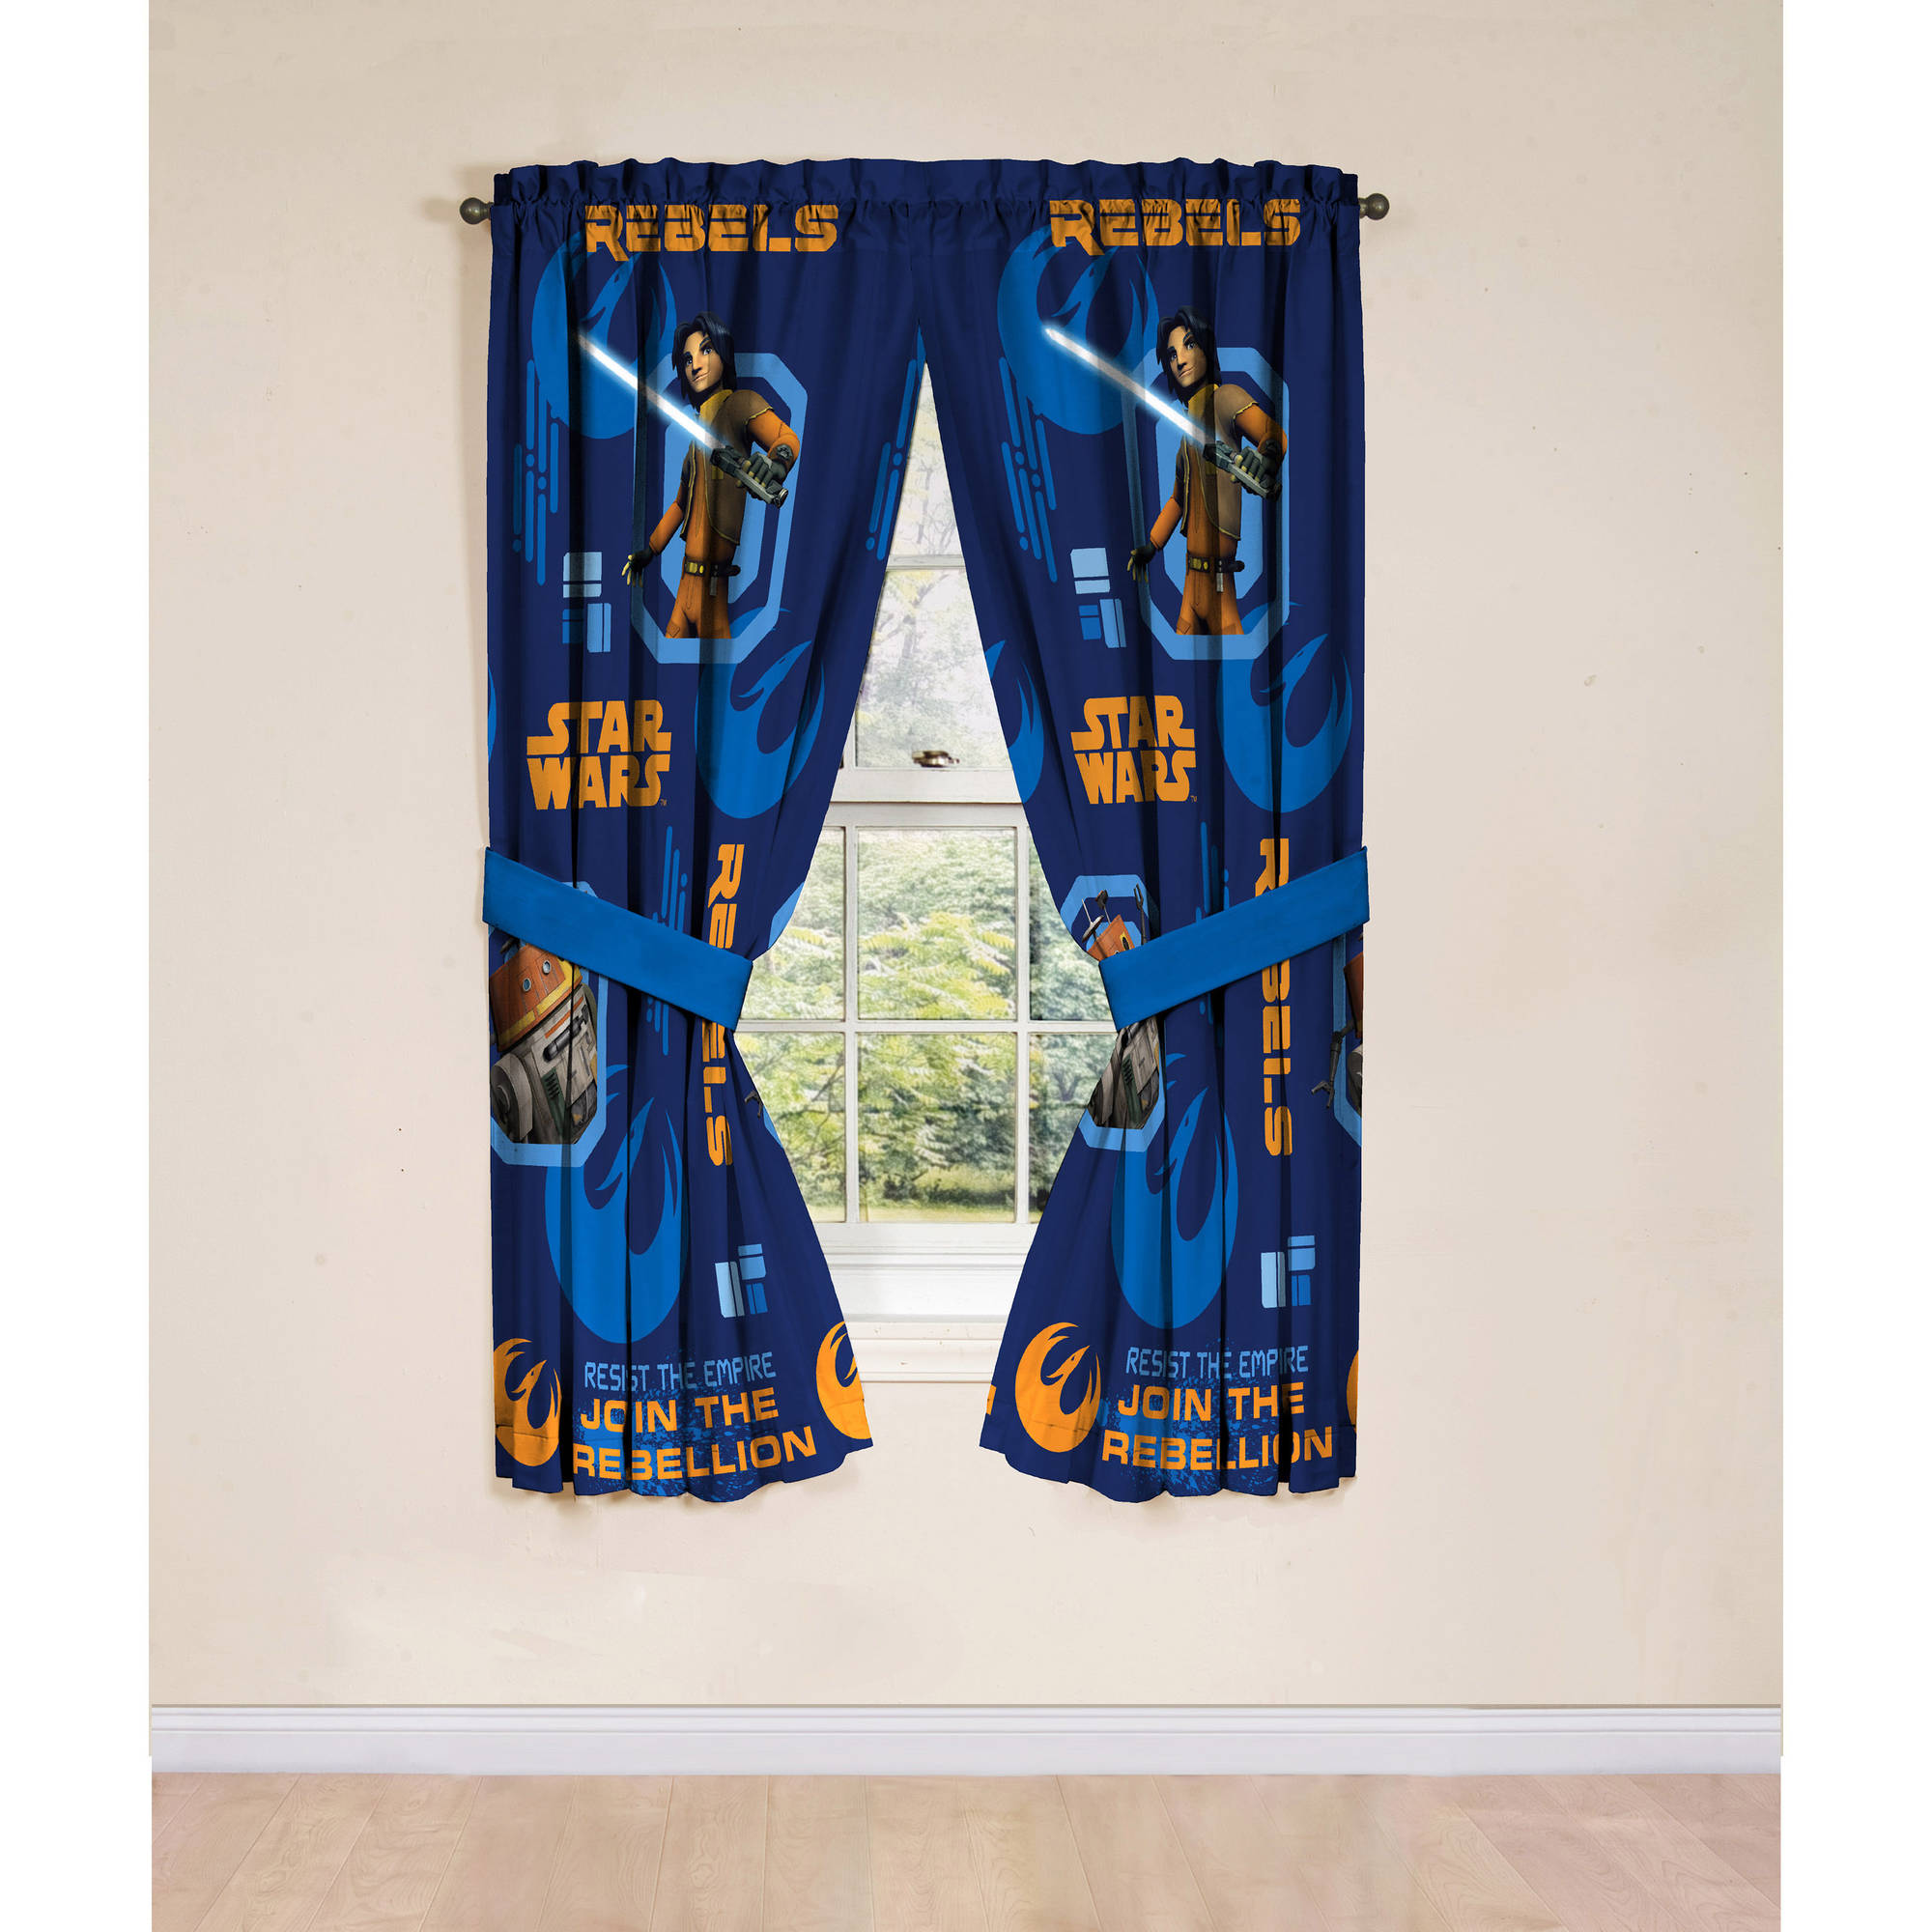 Star Wars Rebels Boys Bedroom Curtains, Set of 2